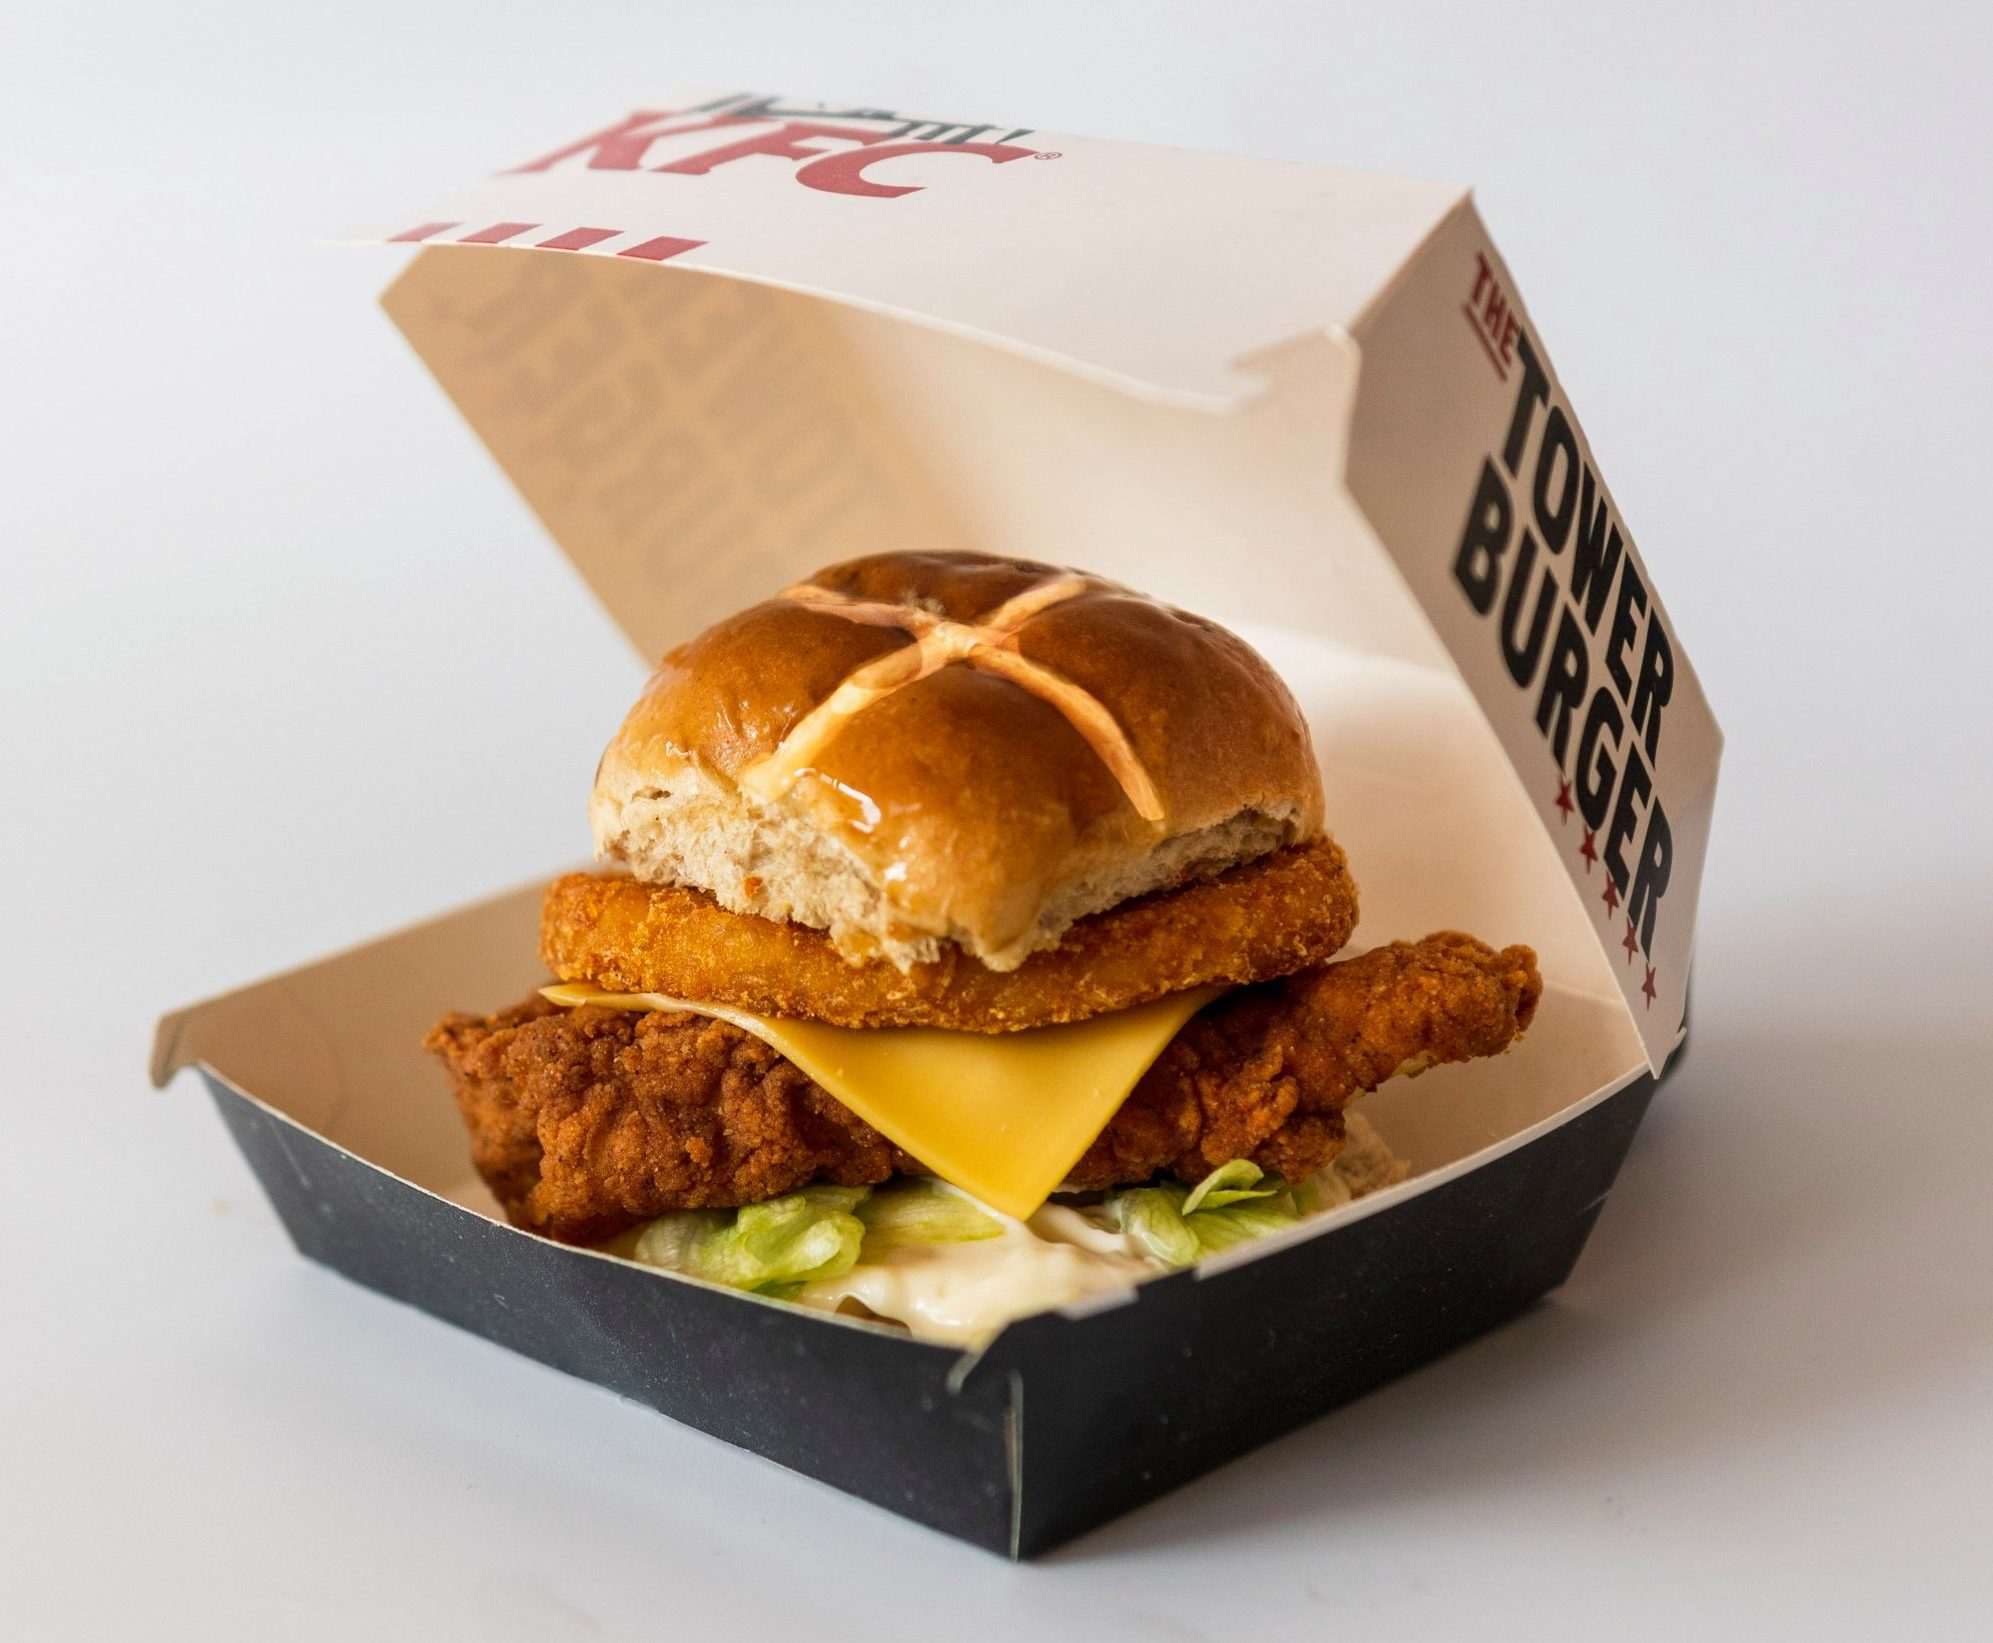 KFC is now trialling a prohibited cranky bun burger